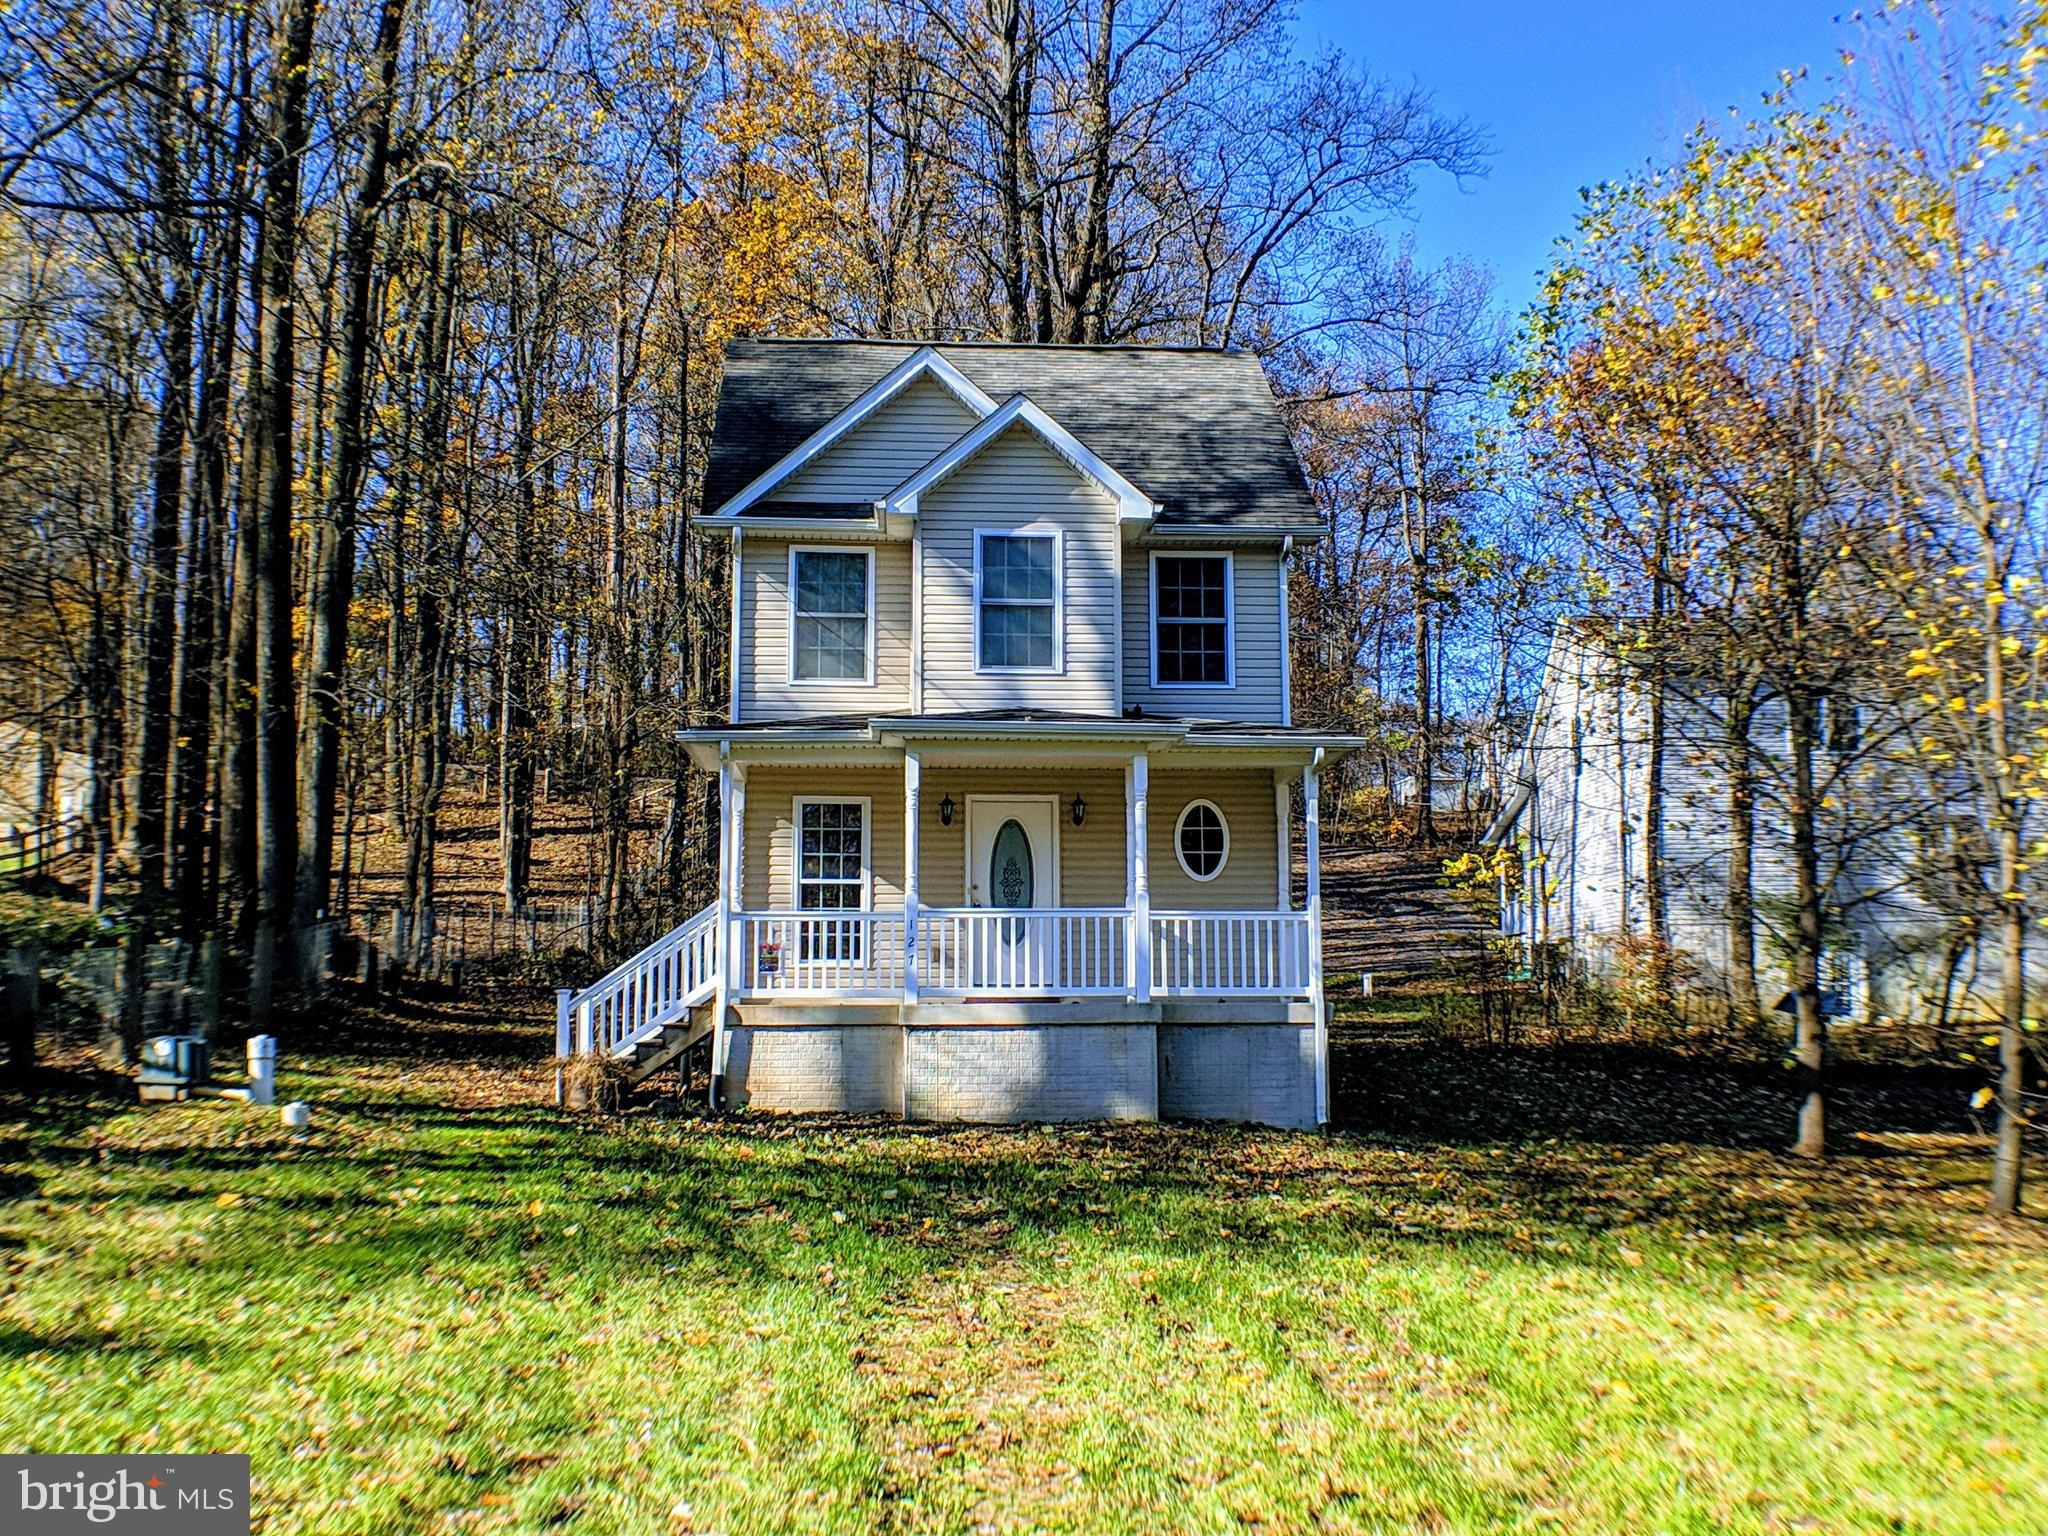 127 NEZ PERCE WAY, CHESTER GAP, VA 22623